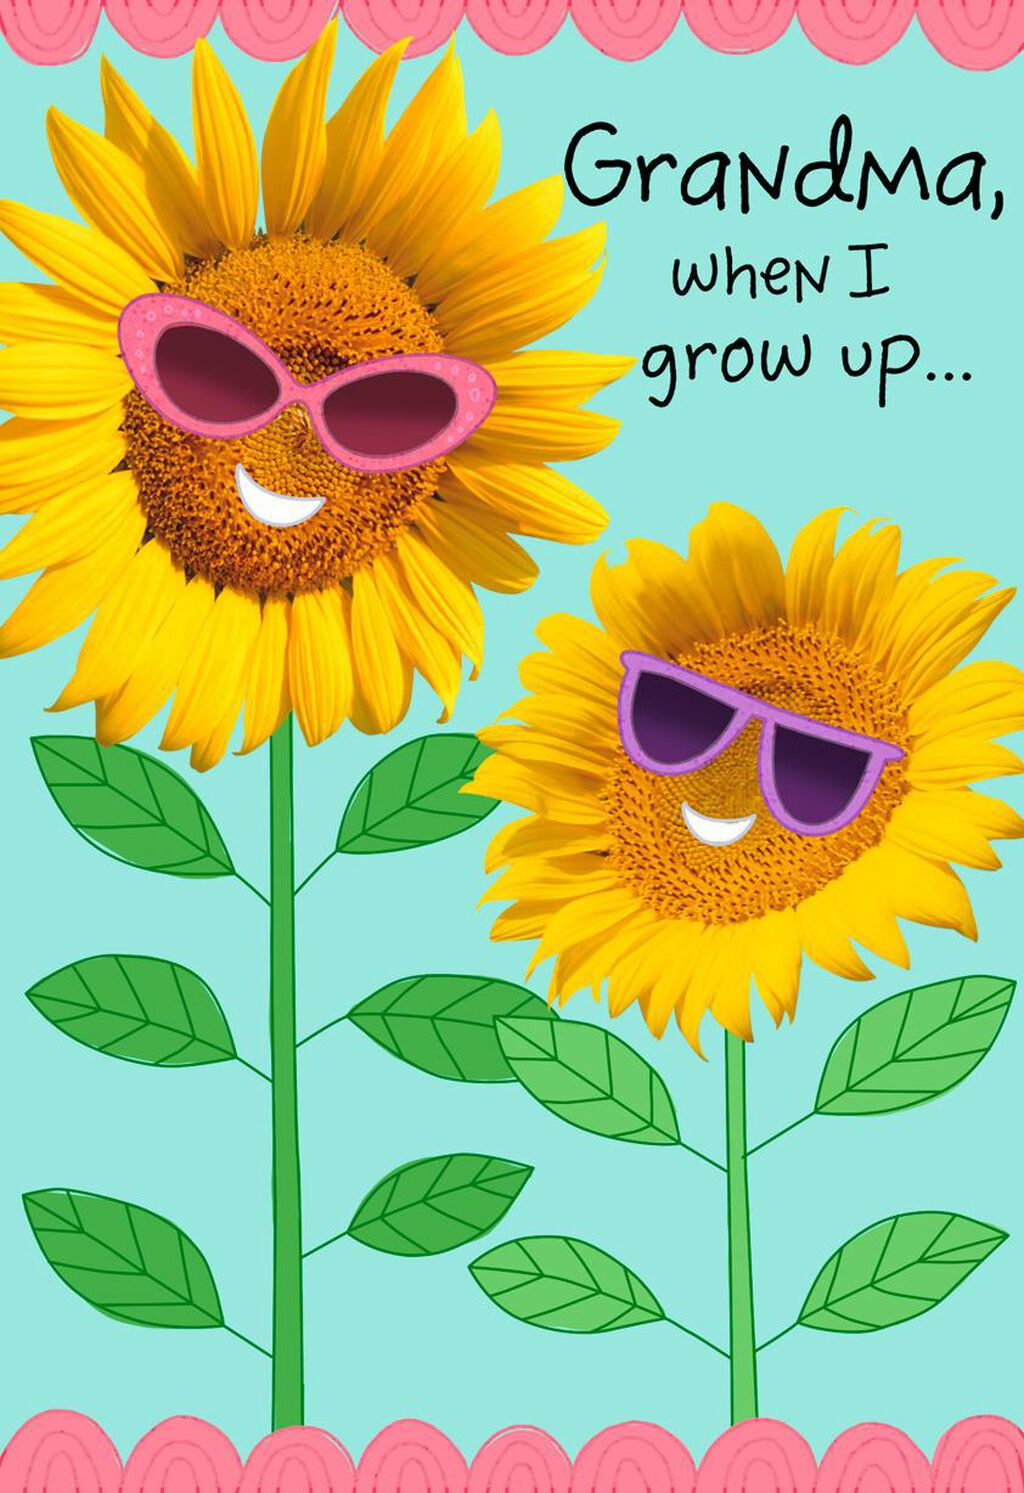 Sunflower Shades Grandparents Day Card For Grandma Greeting Cards